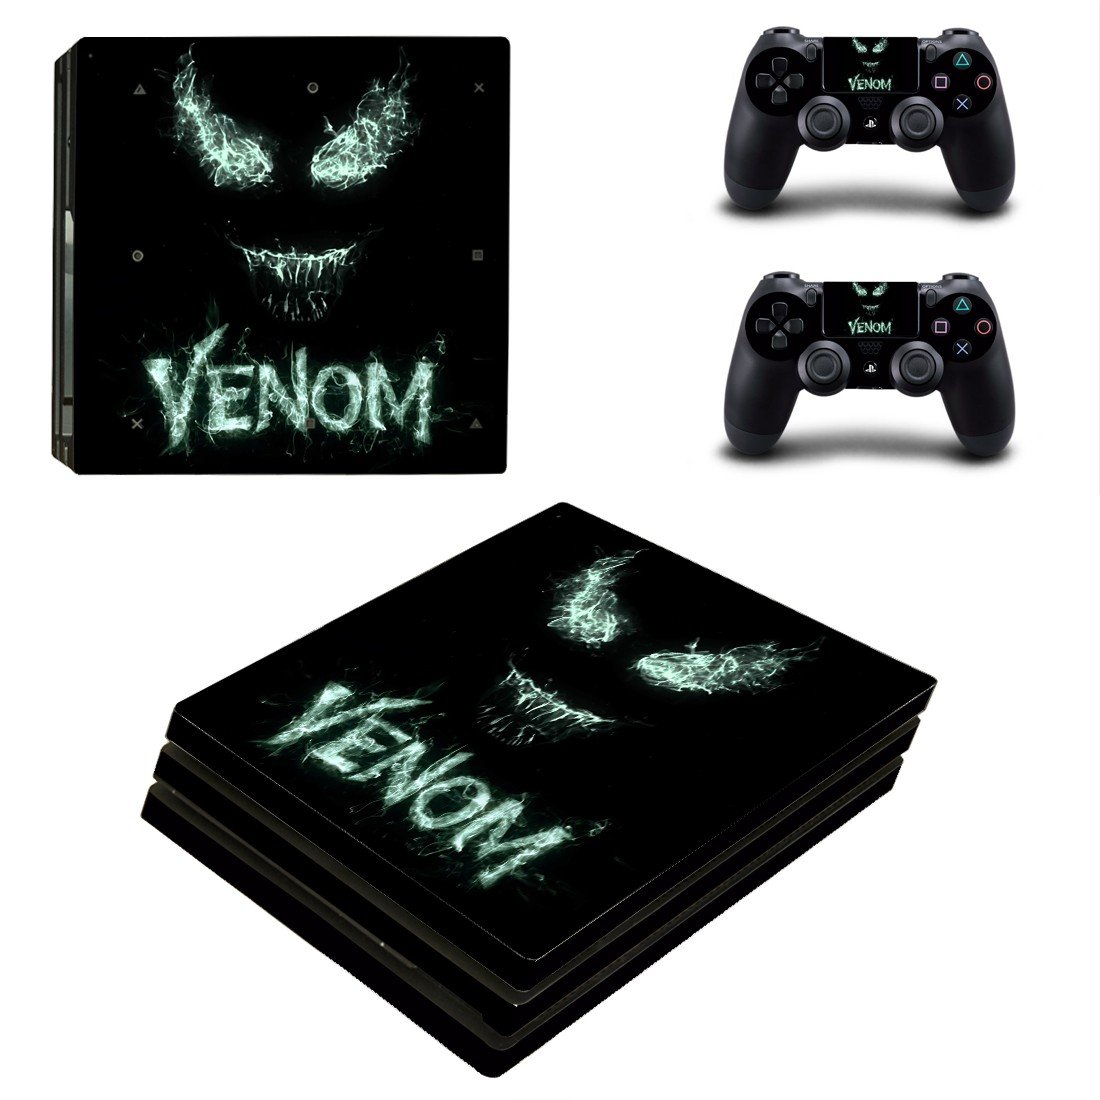 Venom decal skin sticker for PS4 Pro console and controllers